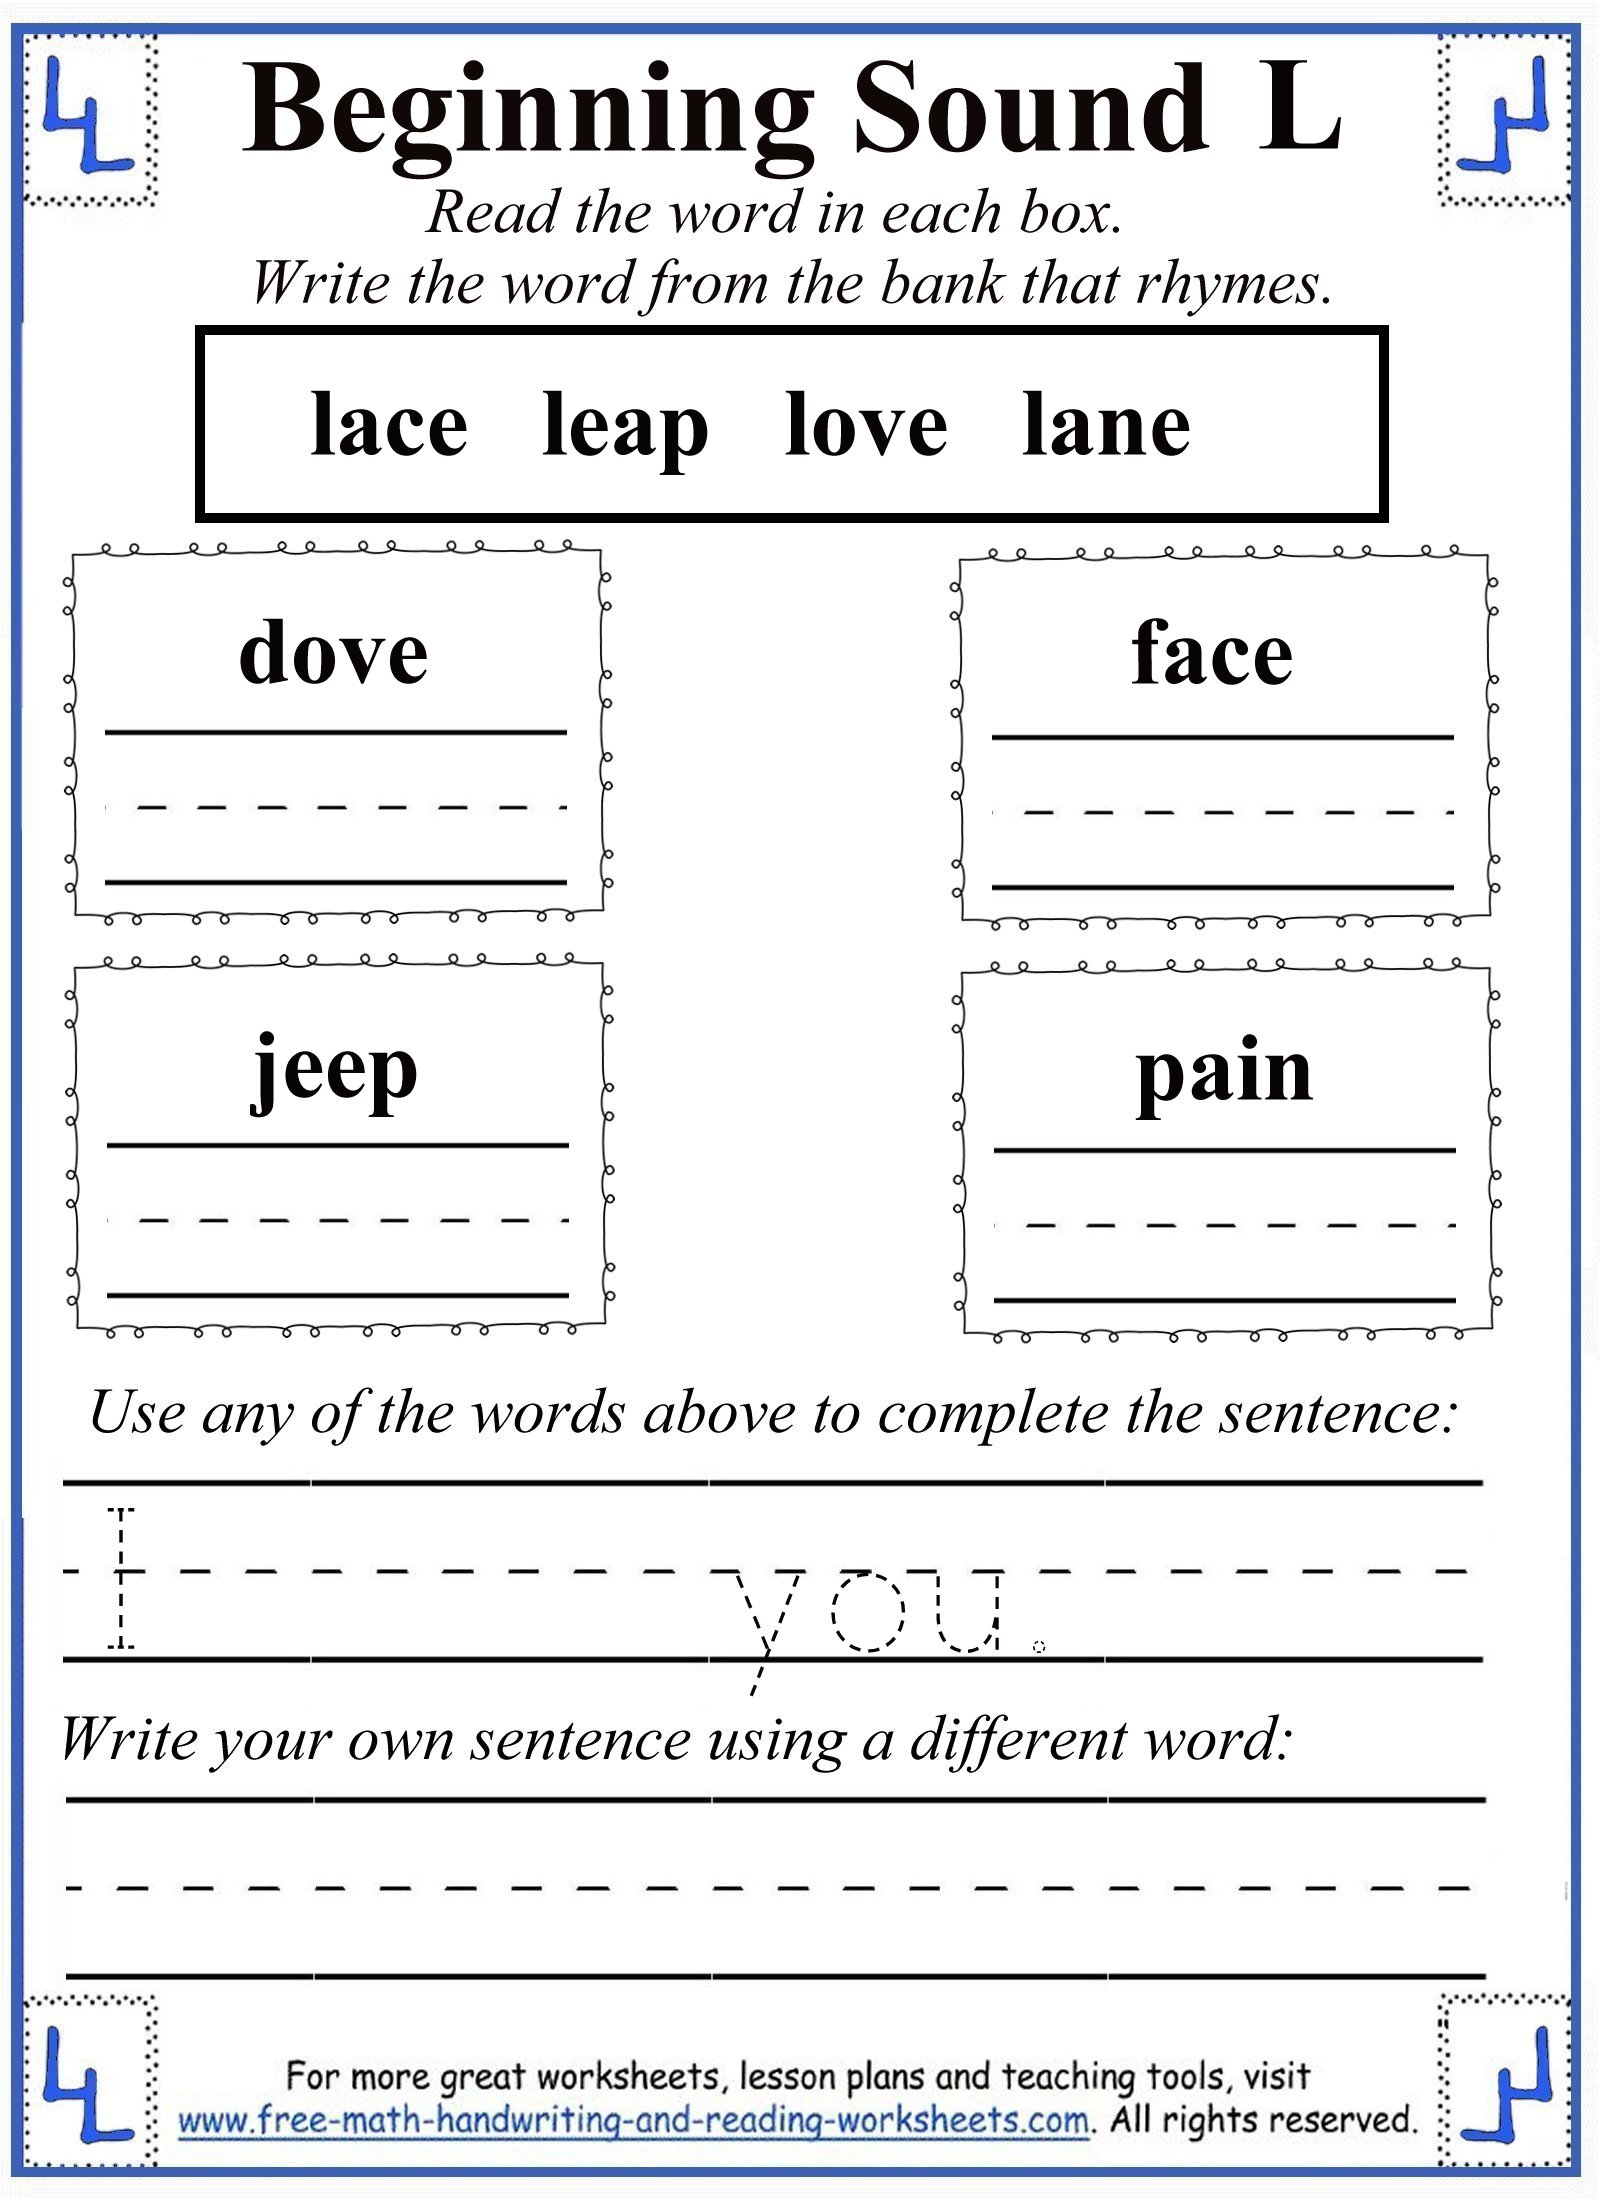 Letter Sounds Worksheets - School Sparks